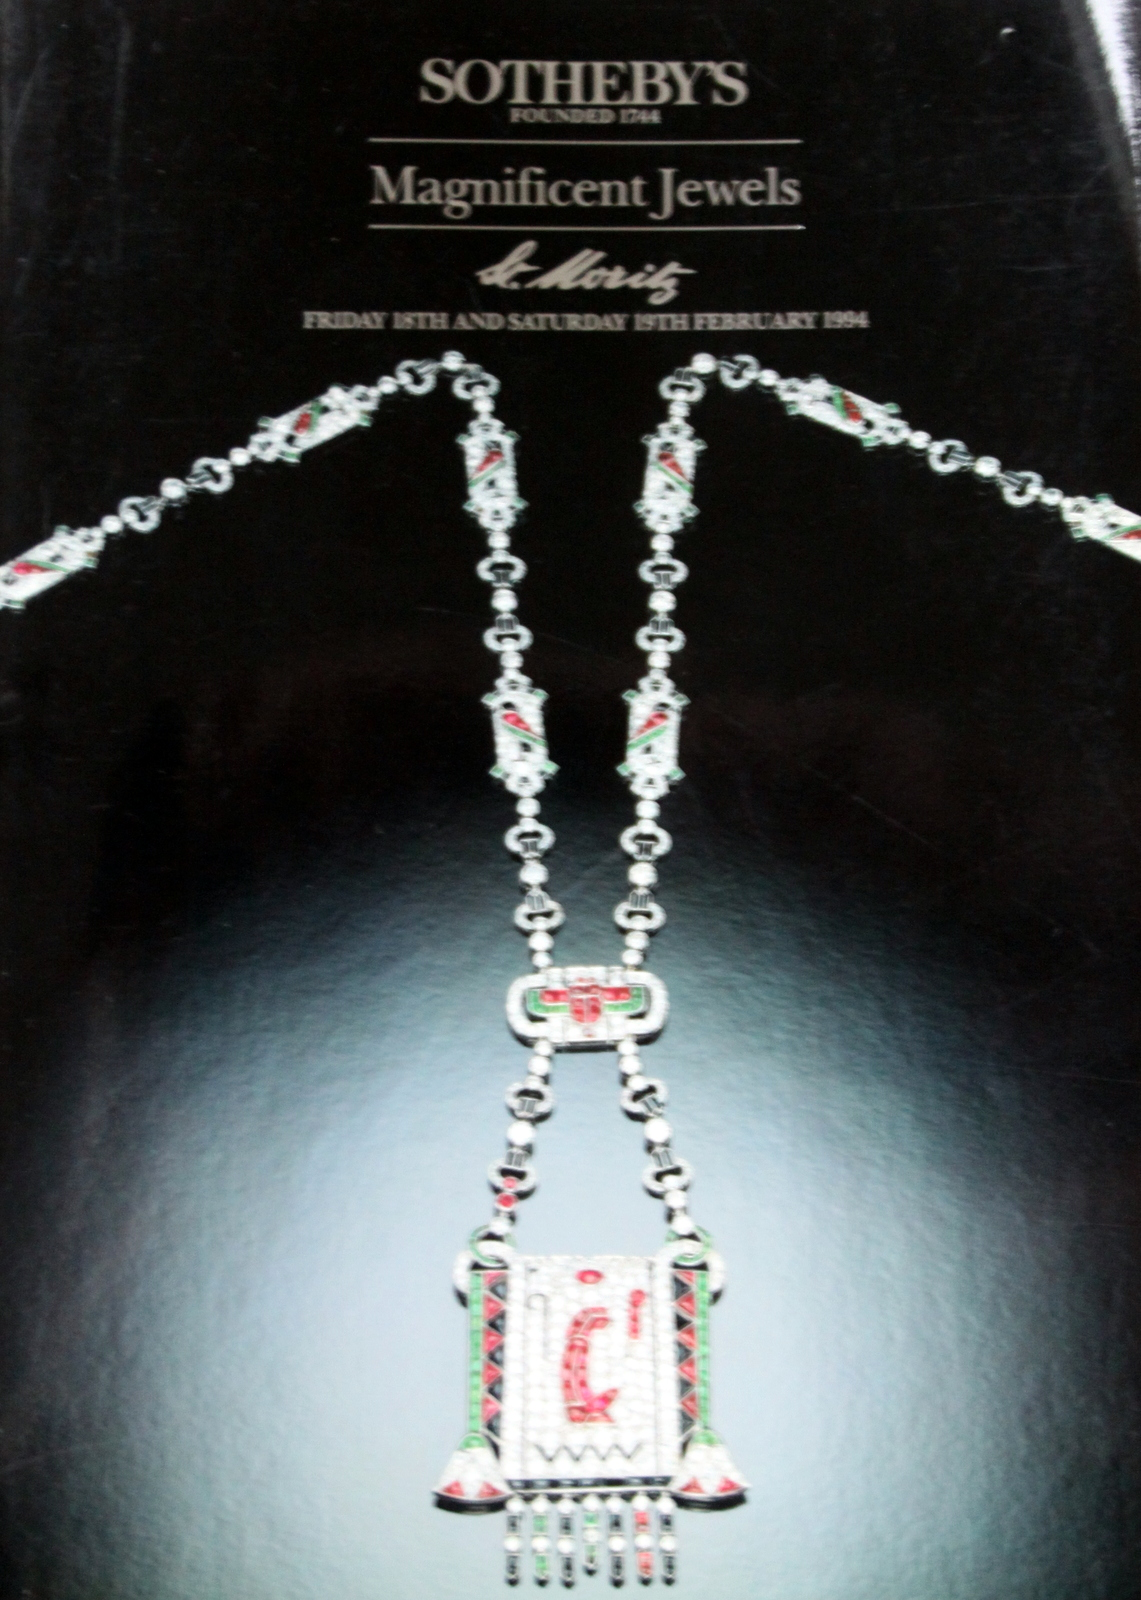 so Sotheby's MAGNIFICENT JEWELS St. Moritz 2/18-19/1994 ...